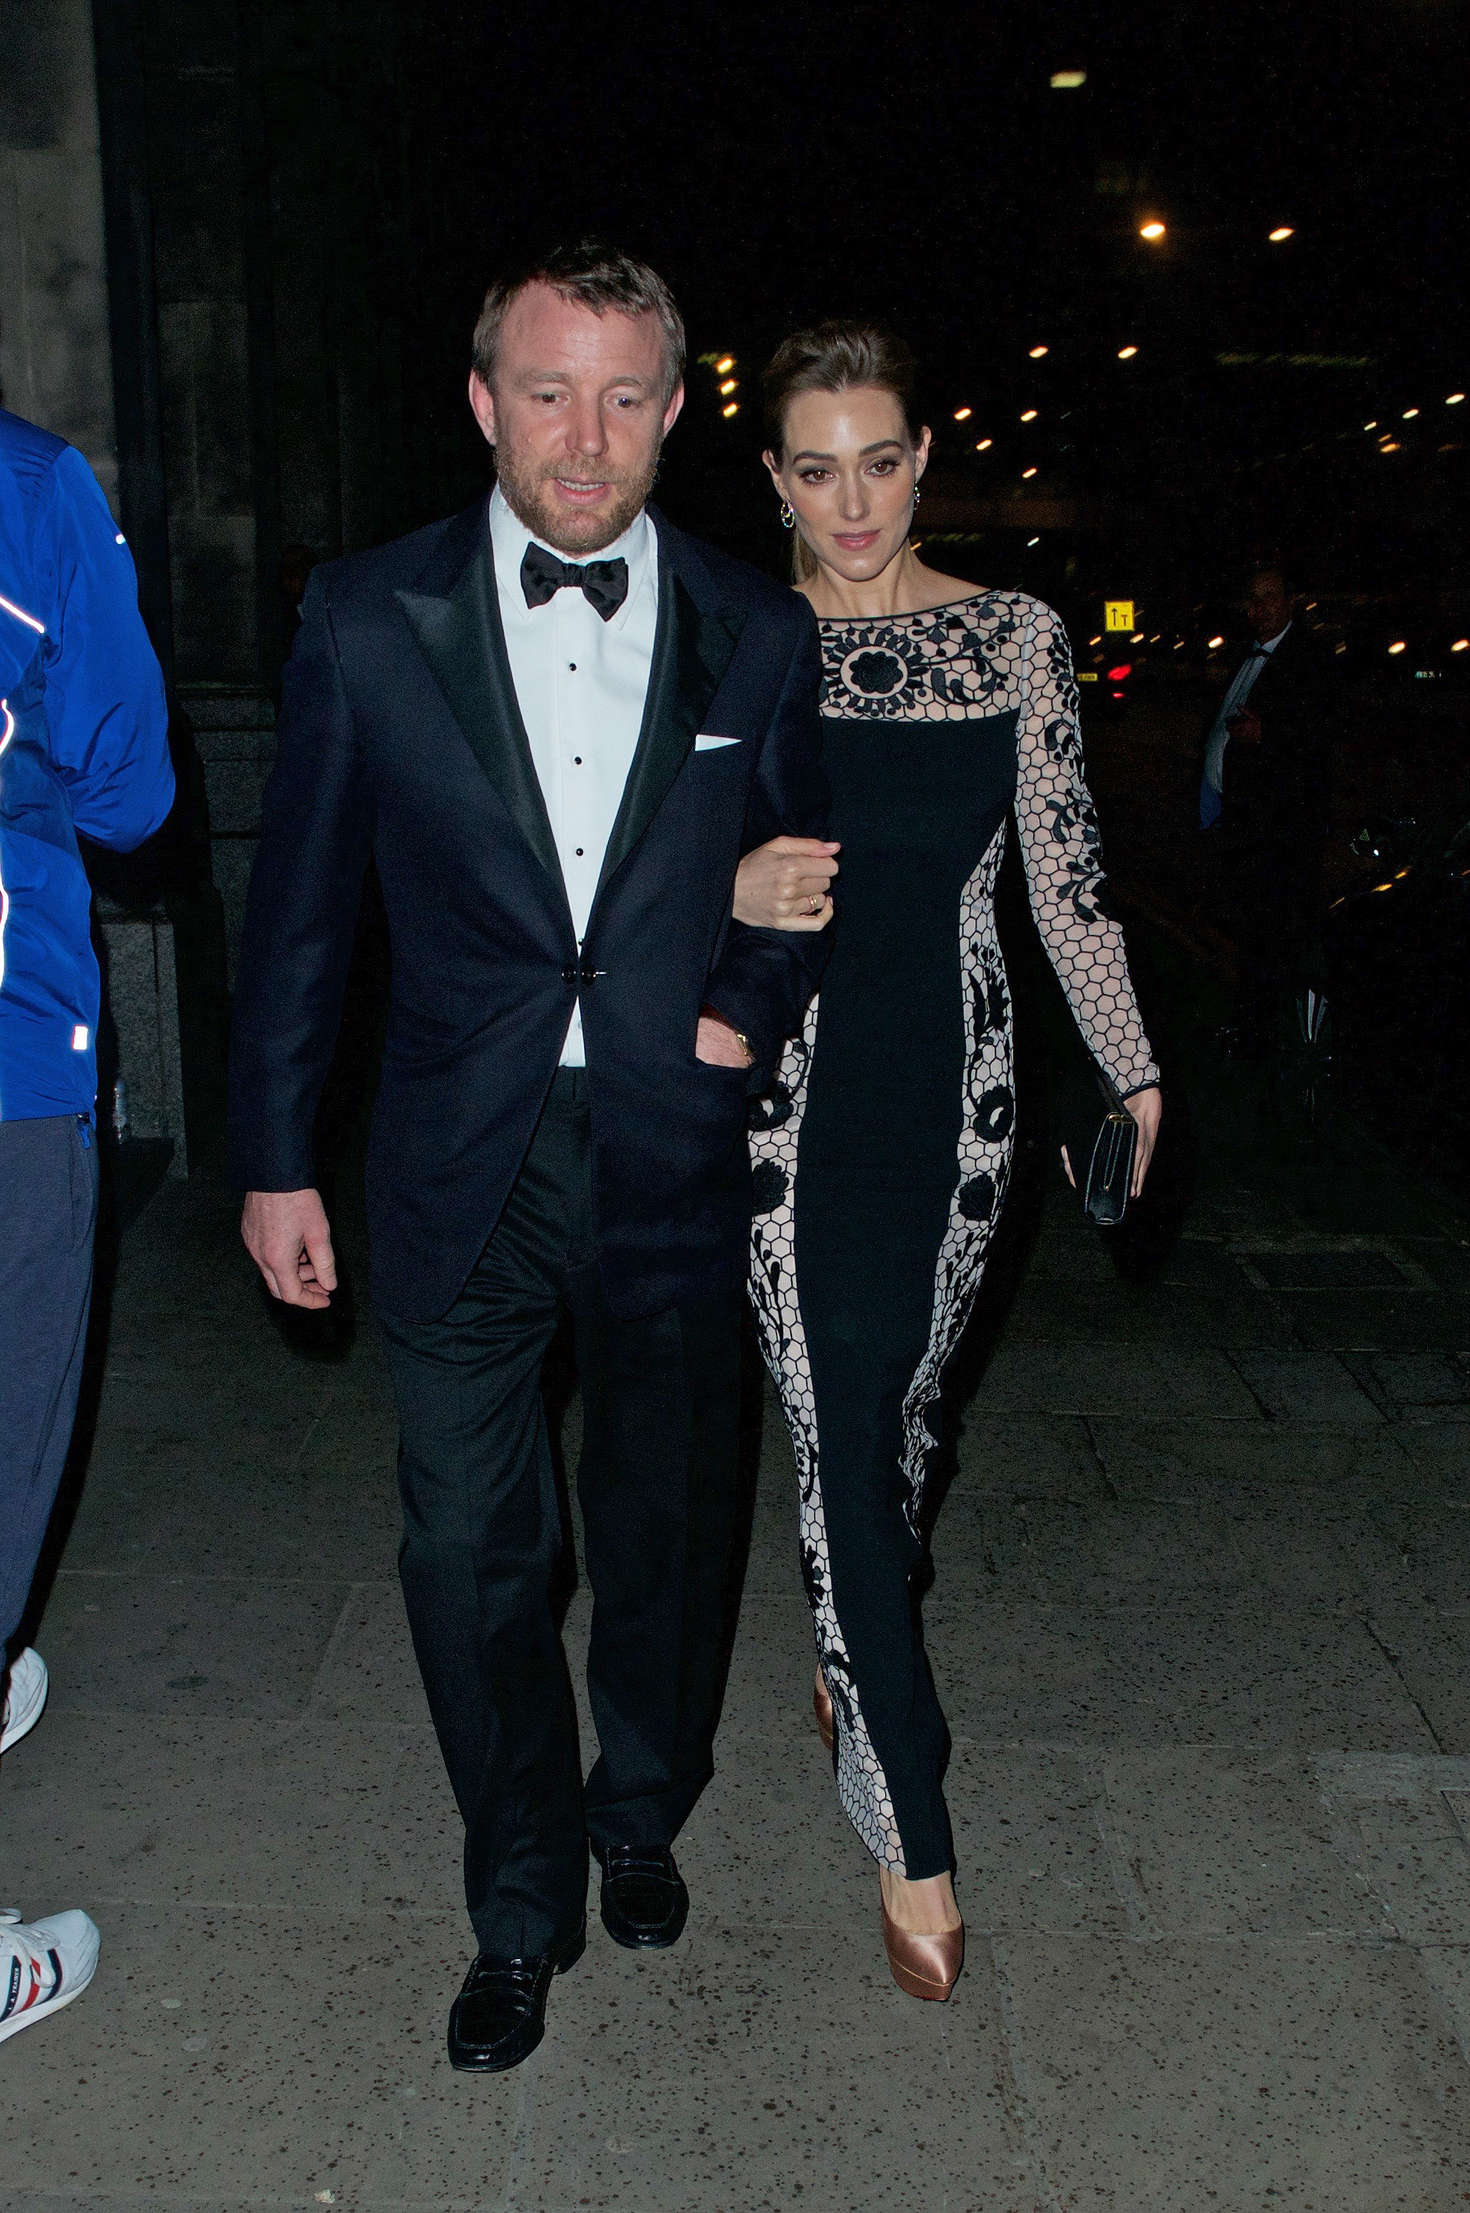 Jacqui Ainsley Leaving the Princes Trust Gala Dinner in London